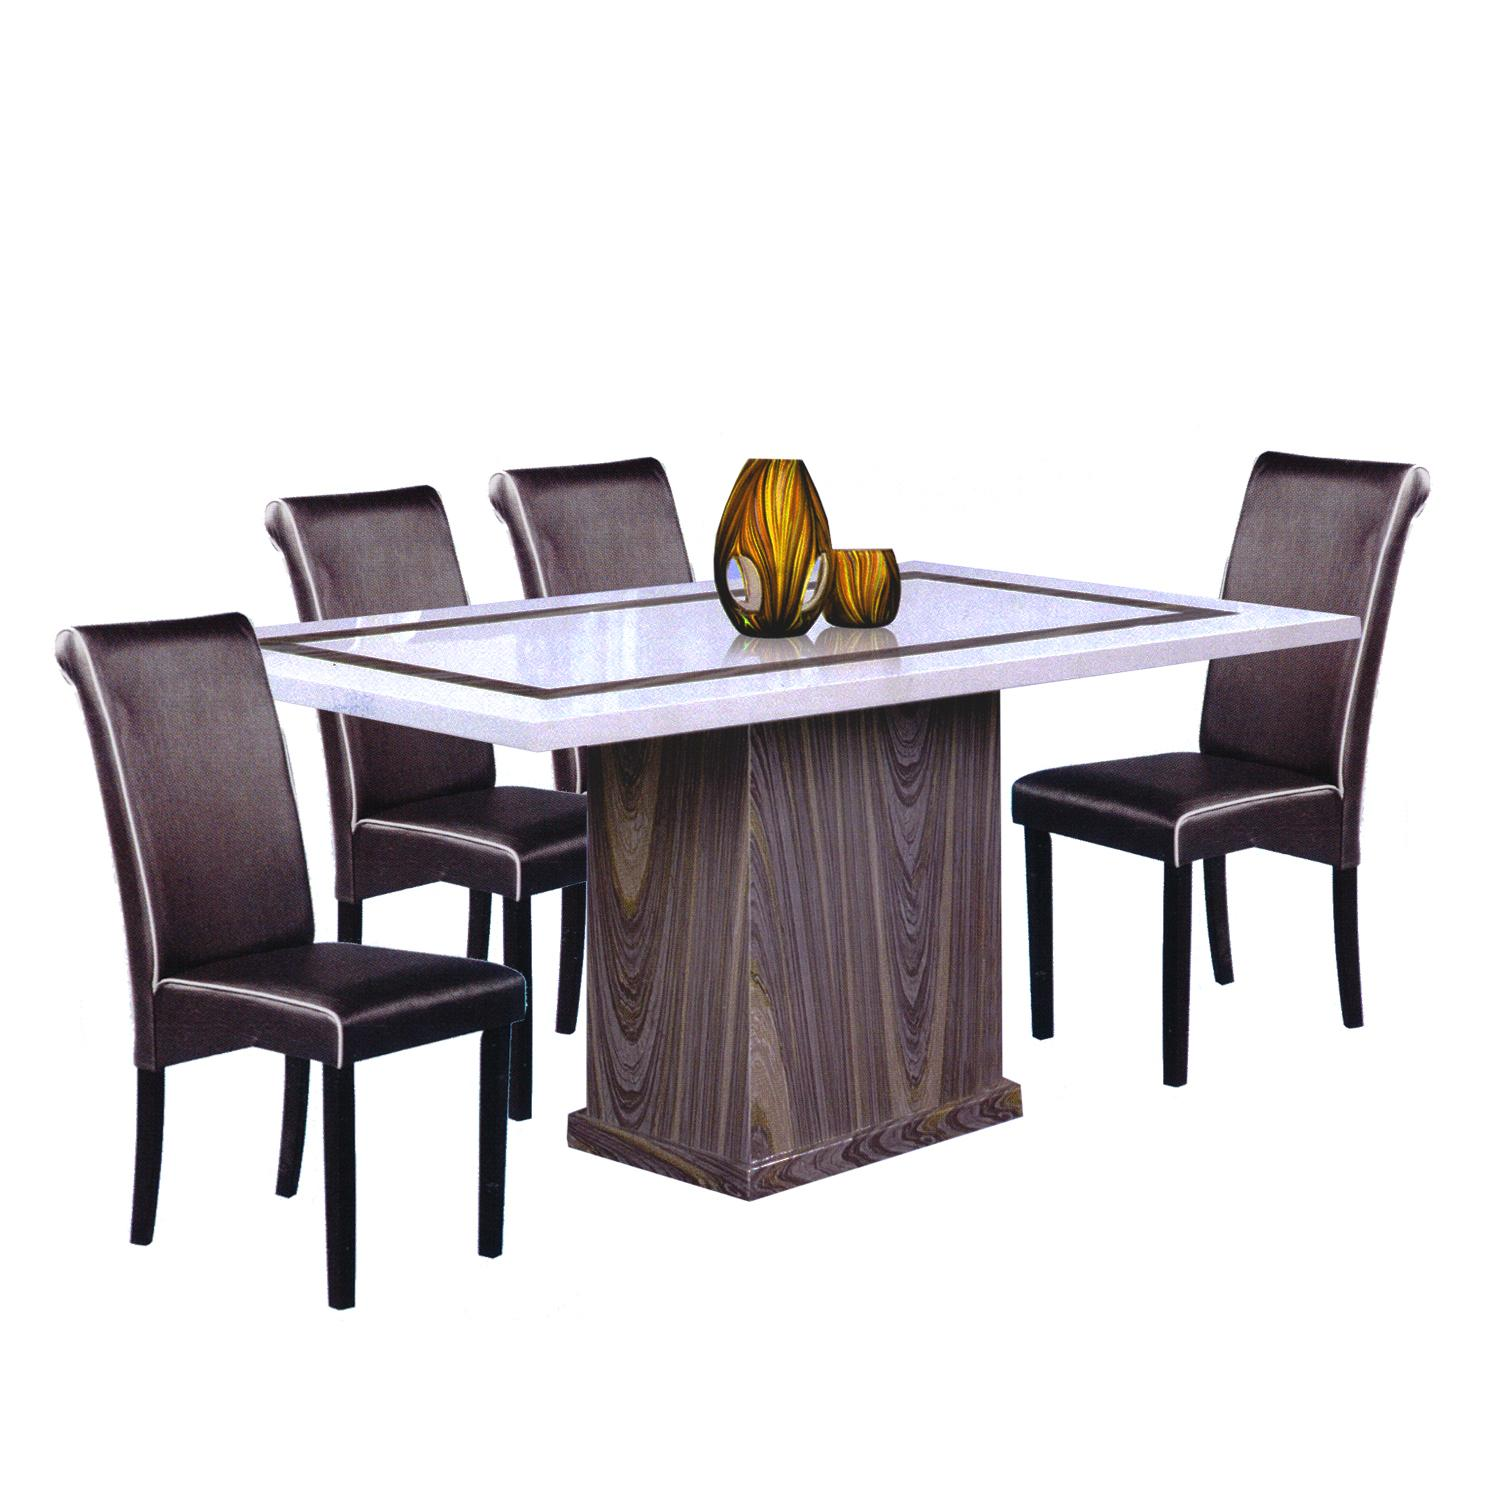 YANNIC / BARRY Marble Top 1+6 Dining Set